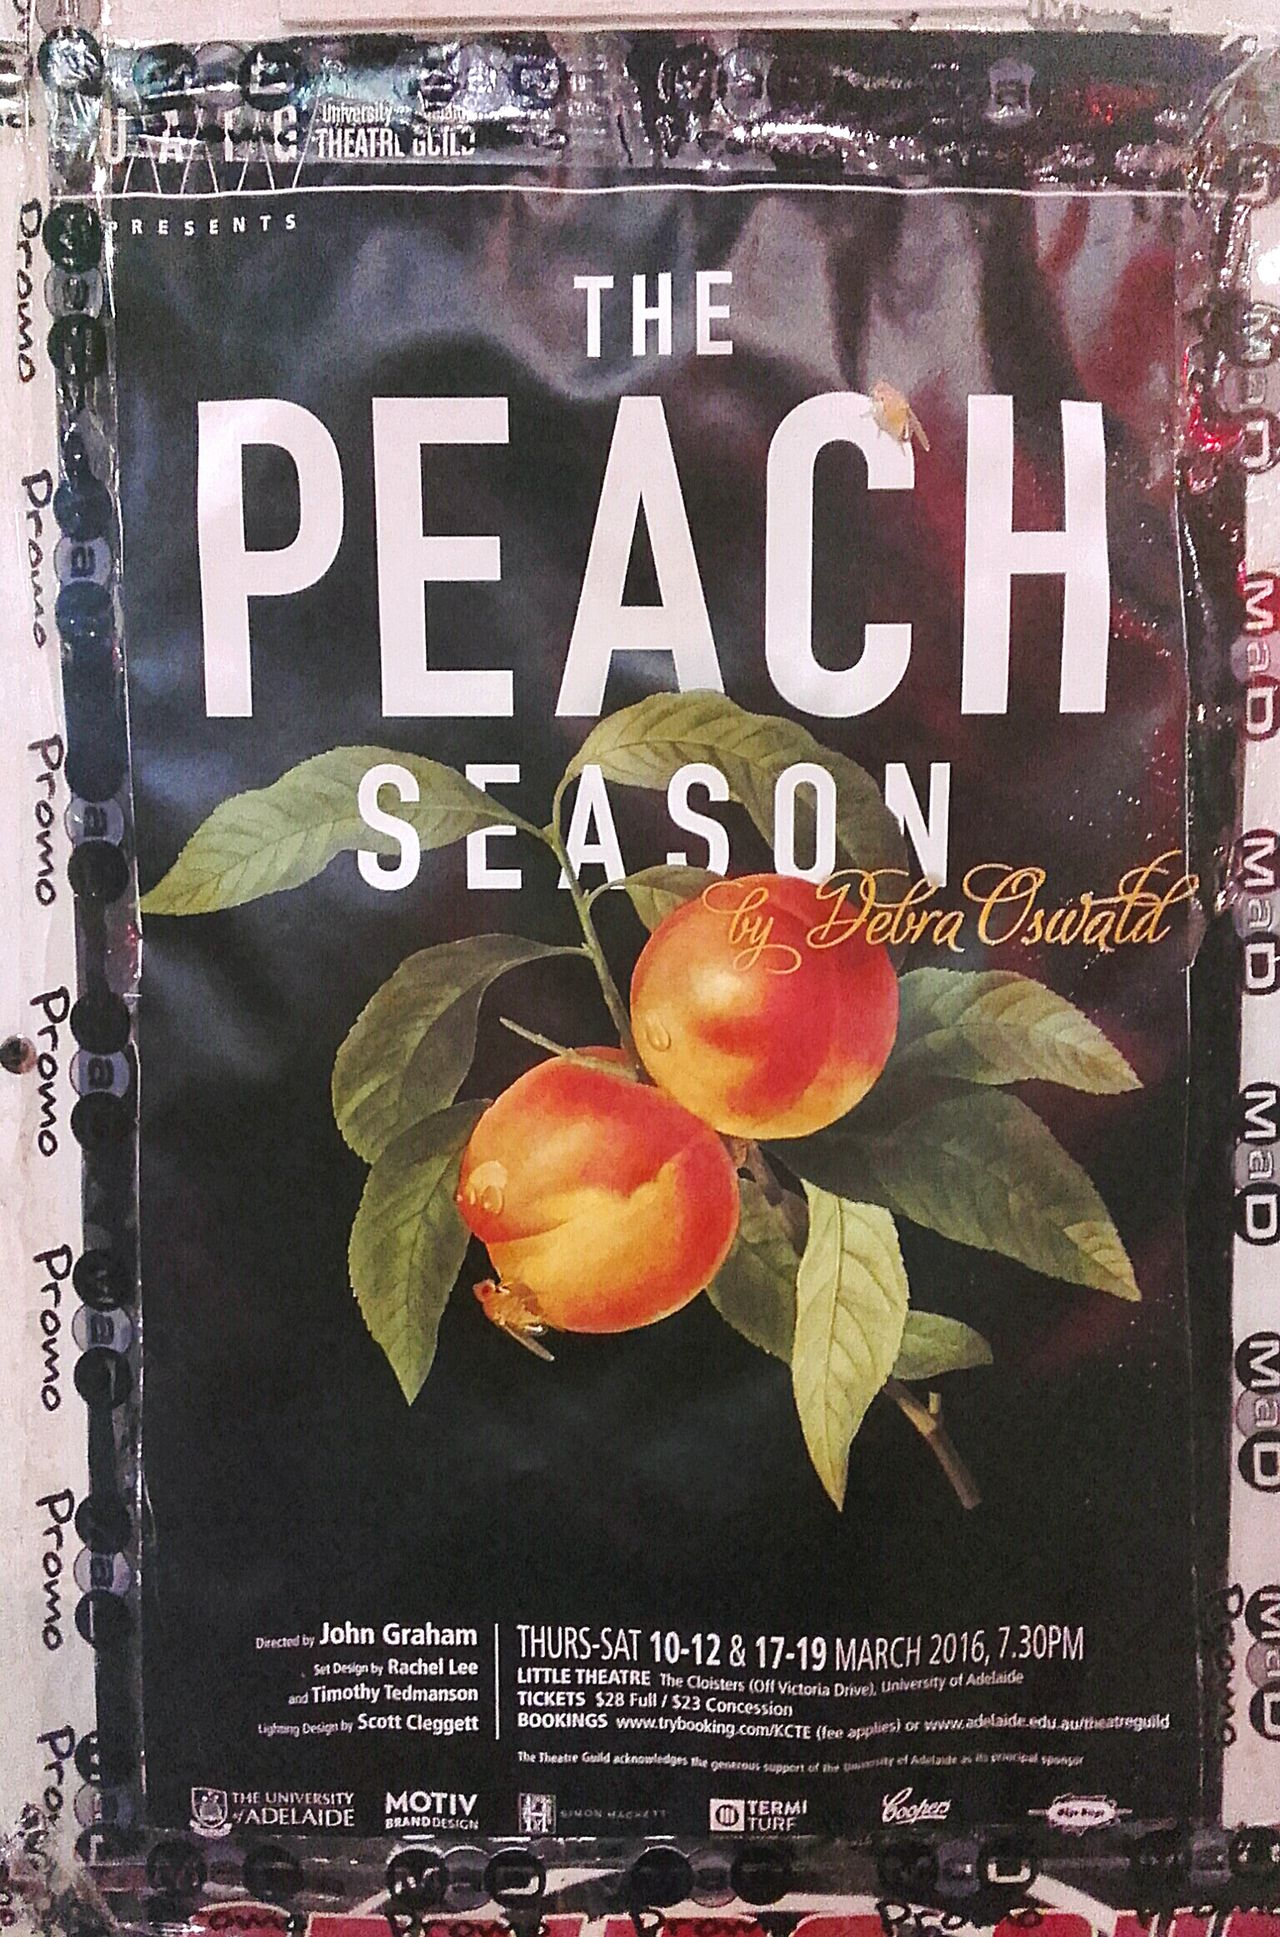 Peach Season Poster Peach Poster Art Peach! Posters Peaches Debra Oswald Posterart Poster! Posterporn Posterdesign Peach Orchards Poster Collection Colour Posters Posterwall Art Postercollection Poster Color ArtWork Artphotography Postercolor Poster Wall Wall Poster Color Posters